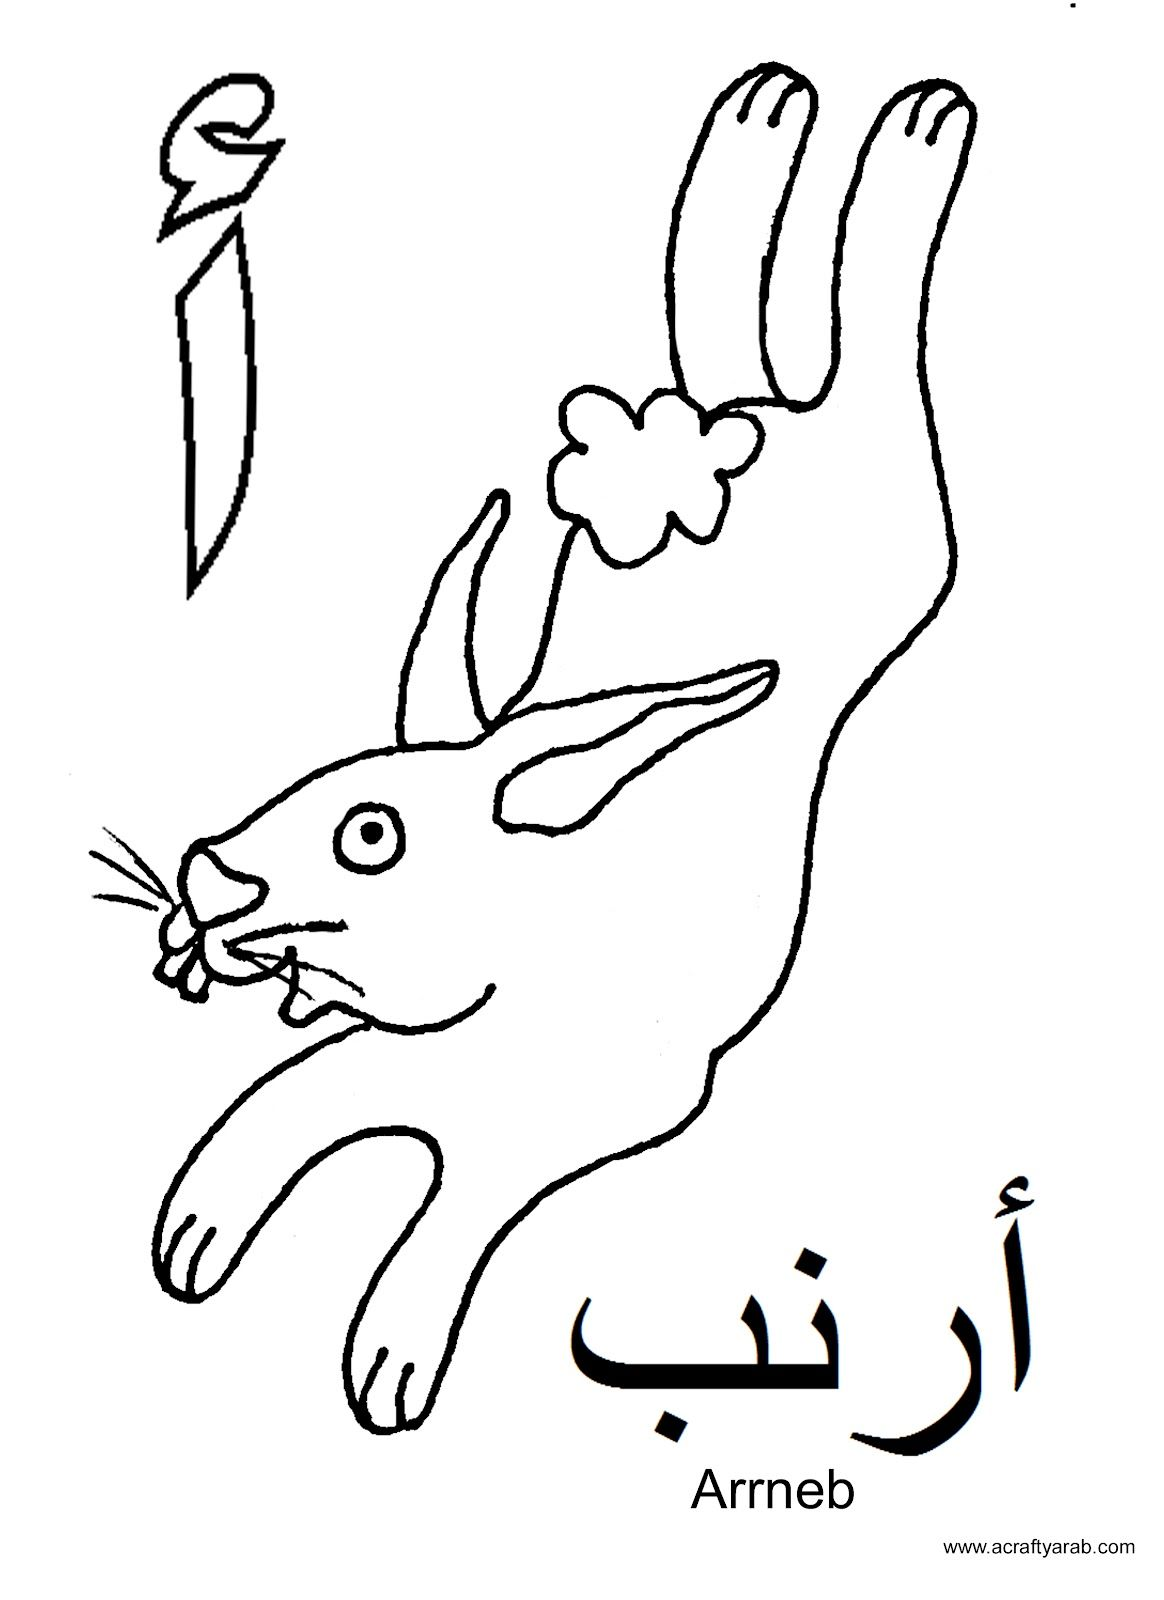 Printable Pages of the Arabic Alphabet to Color | A Crafty Arab ...